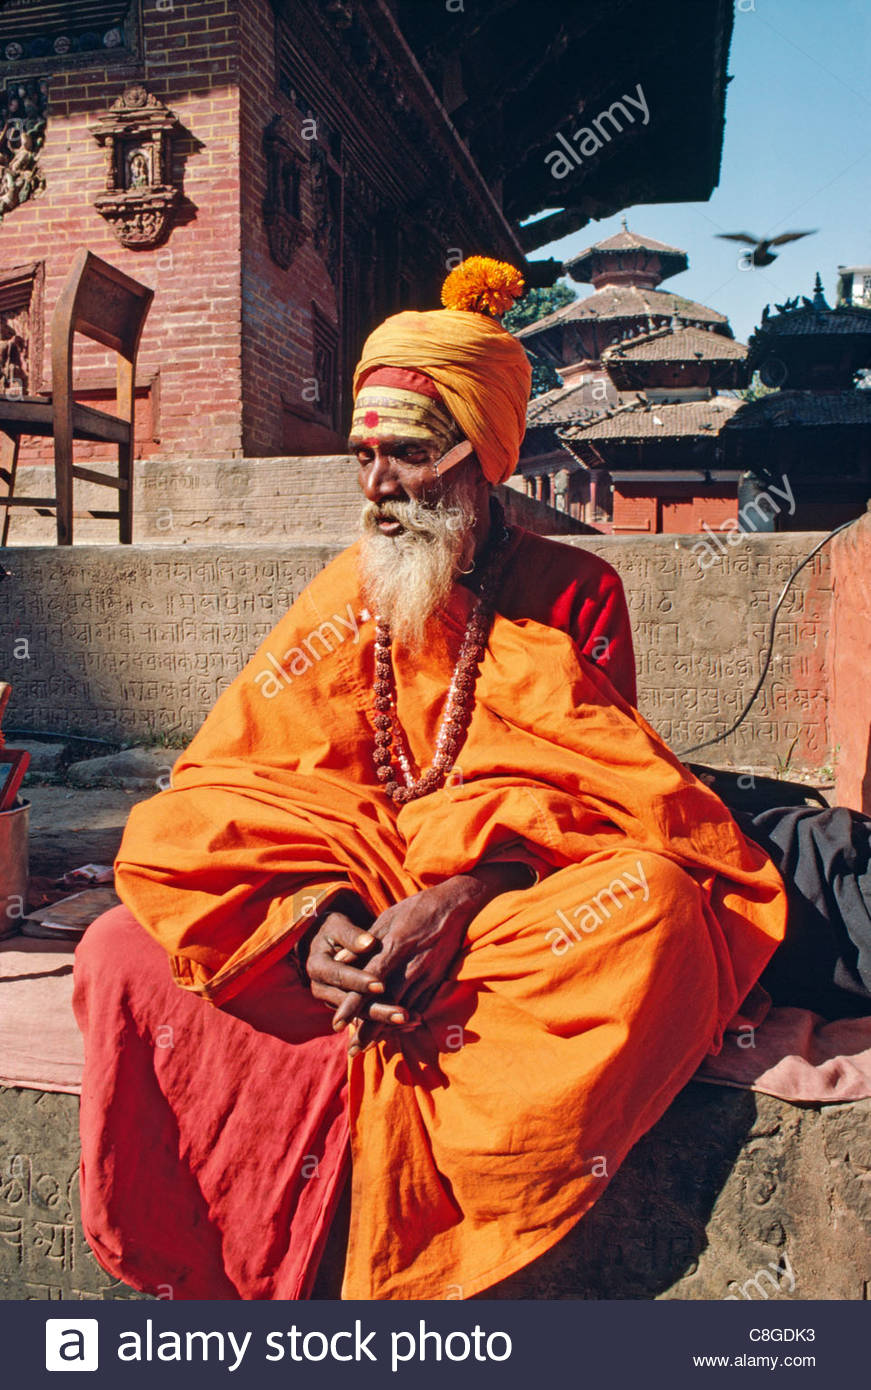 A Hindu ascetic or sadhu, sits on temple steps in Durbar Square. - Stock Image